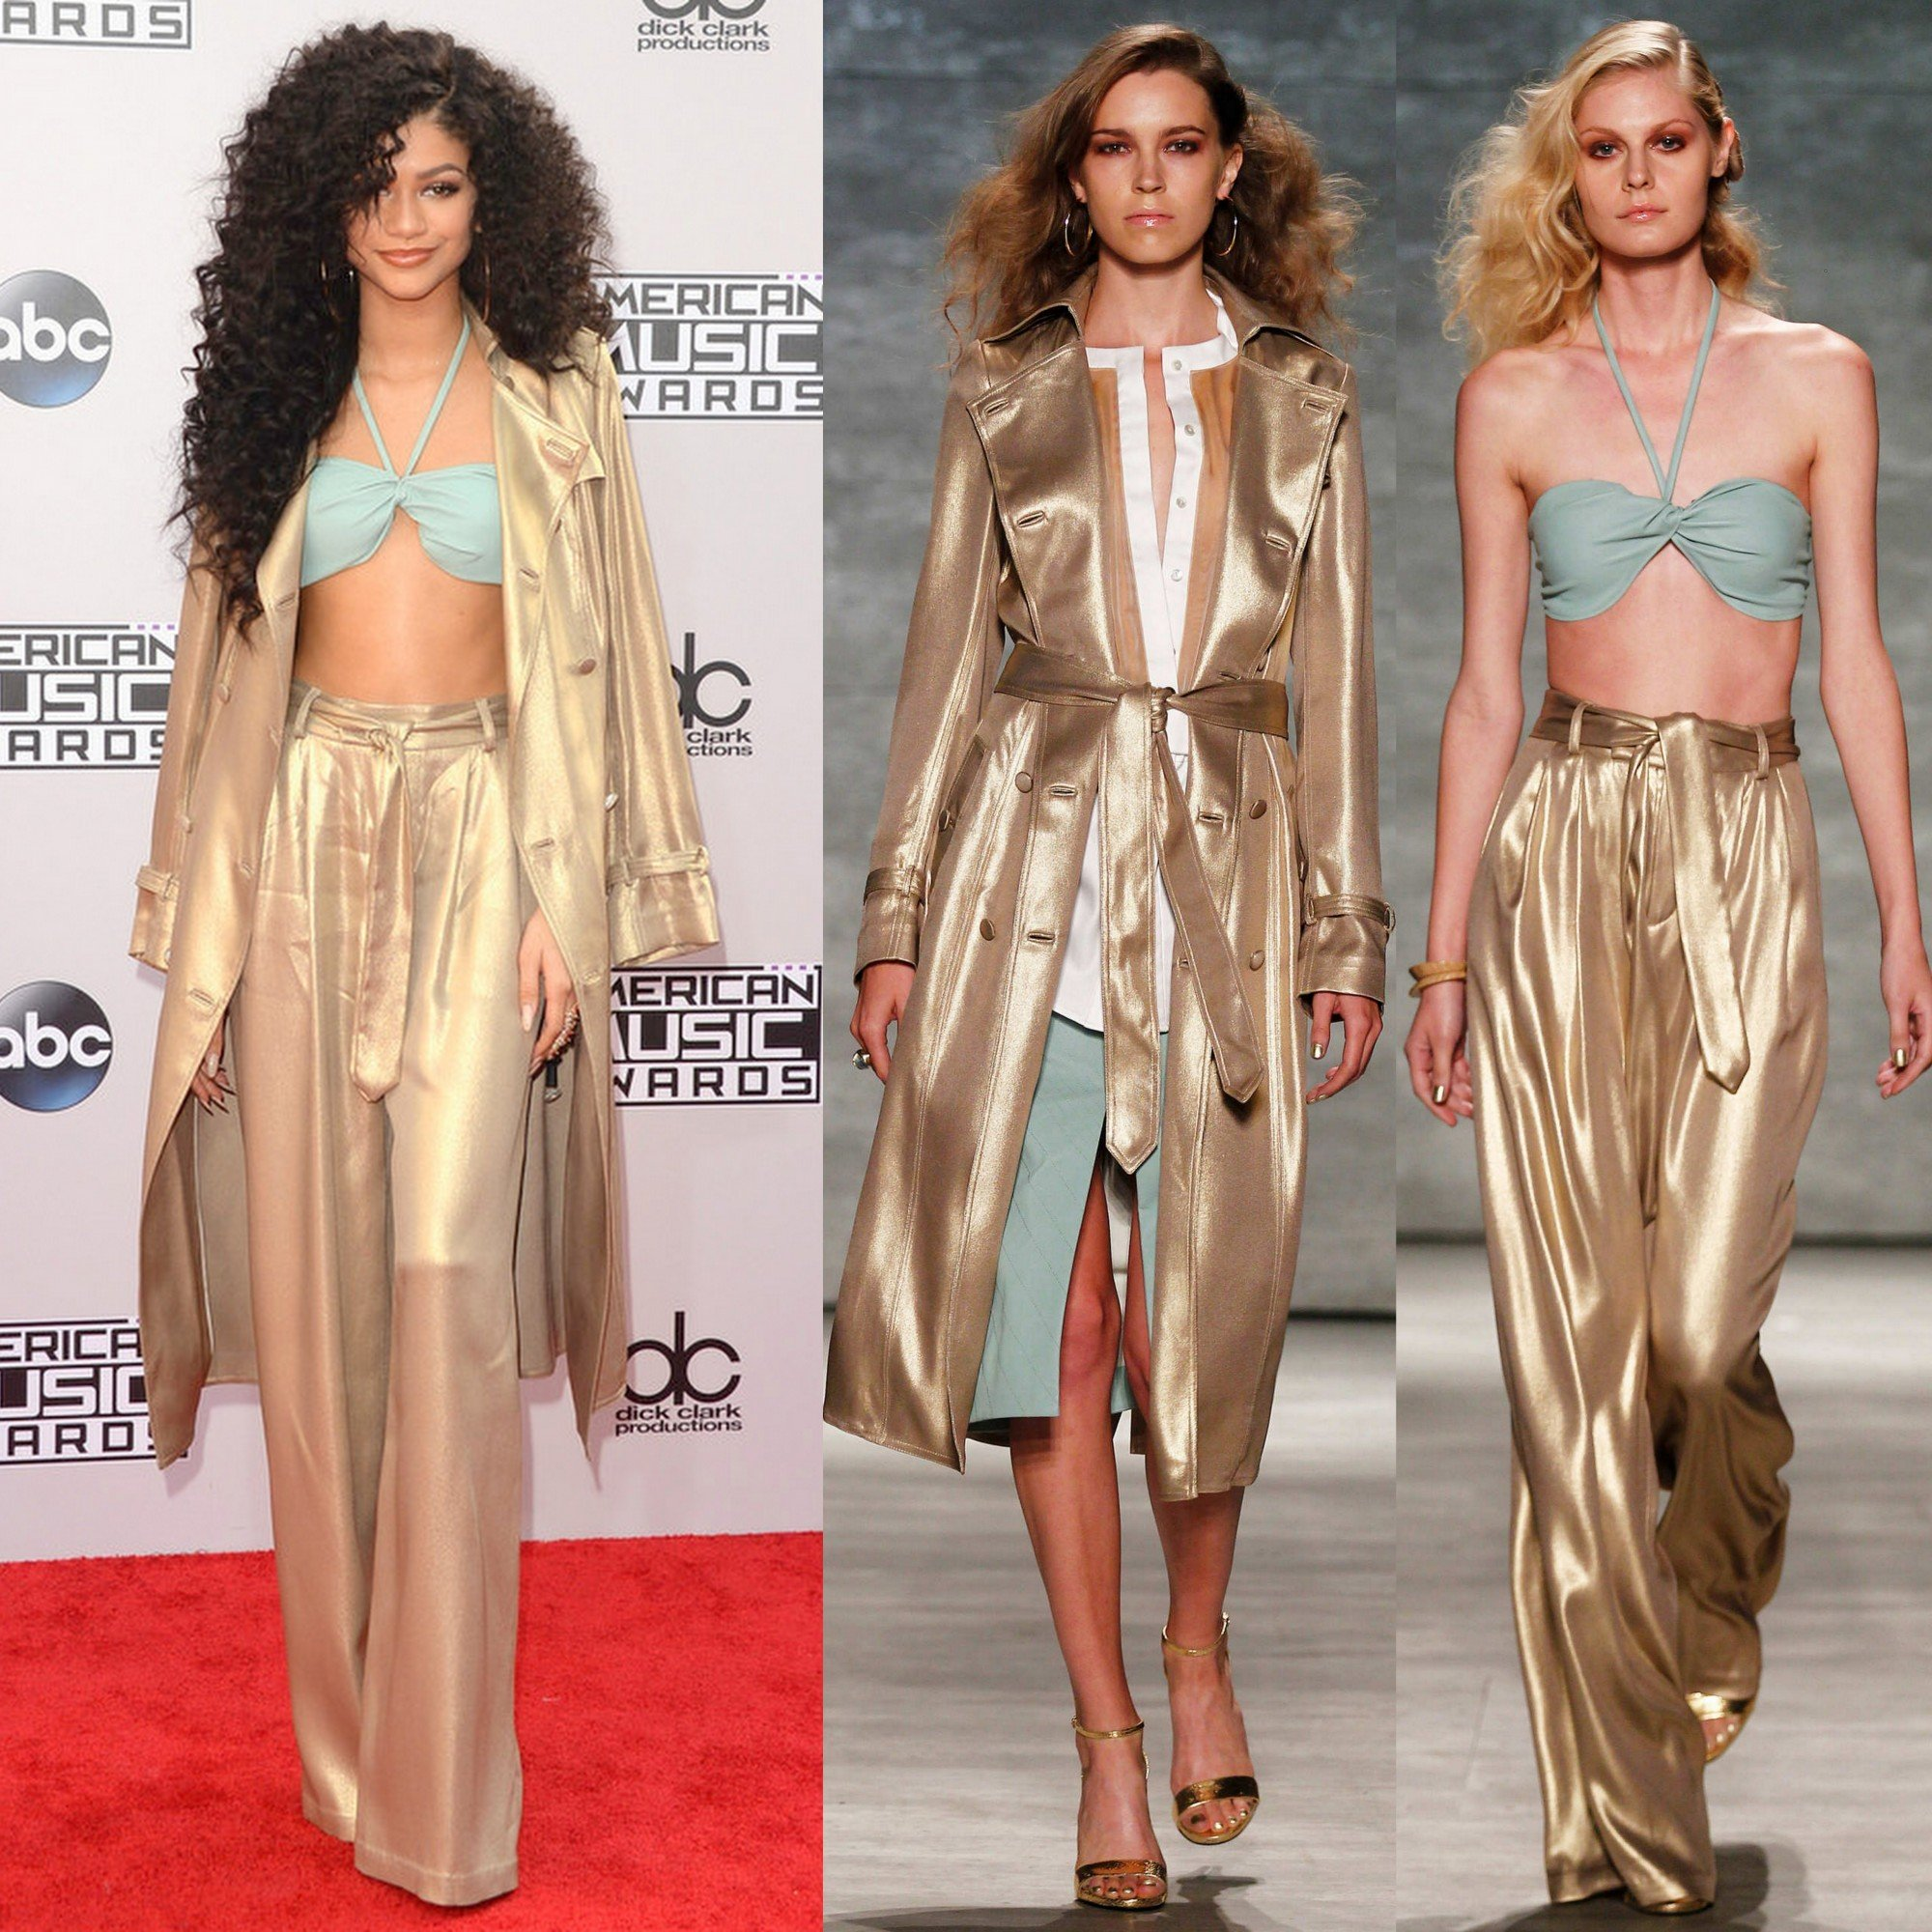 zendaya-coleman-georgine-2014-american-music-awards/